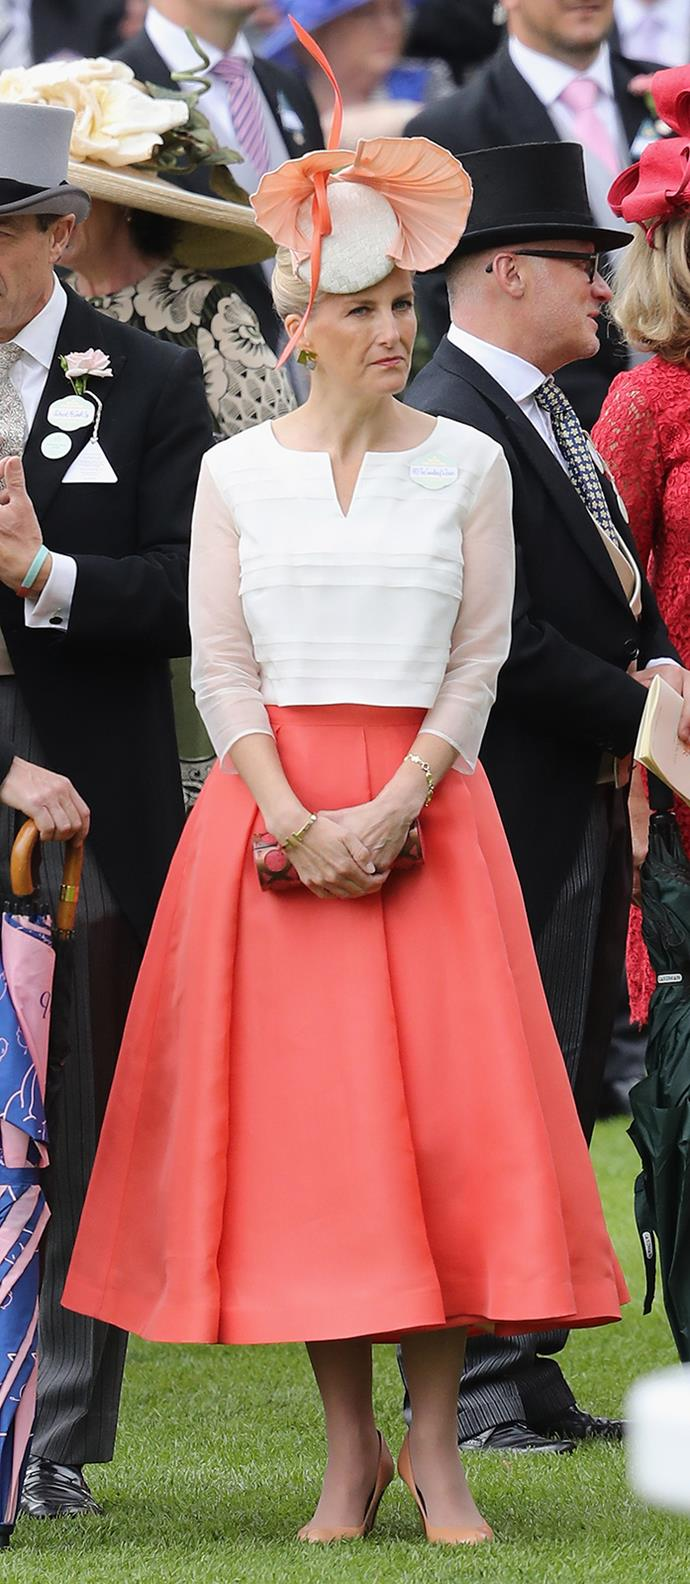 Sophie, Countess of Wessex, cut a bright figure on the racecourse in her coral and white ensemble by British designer Suzannah.